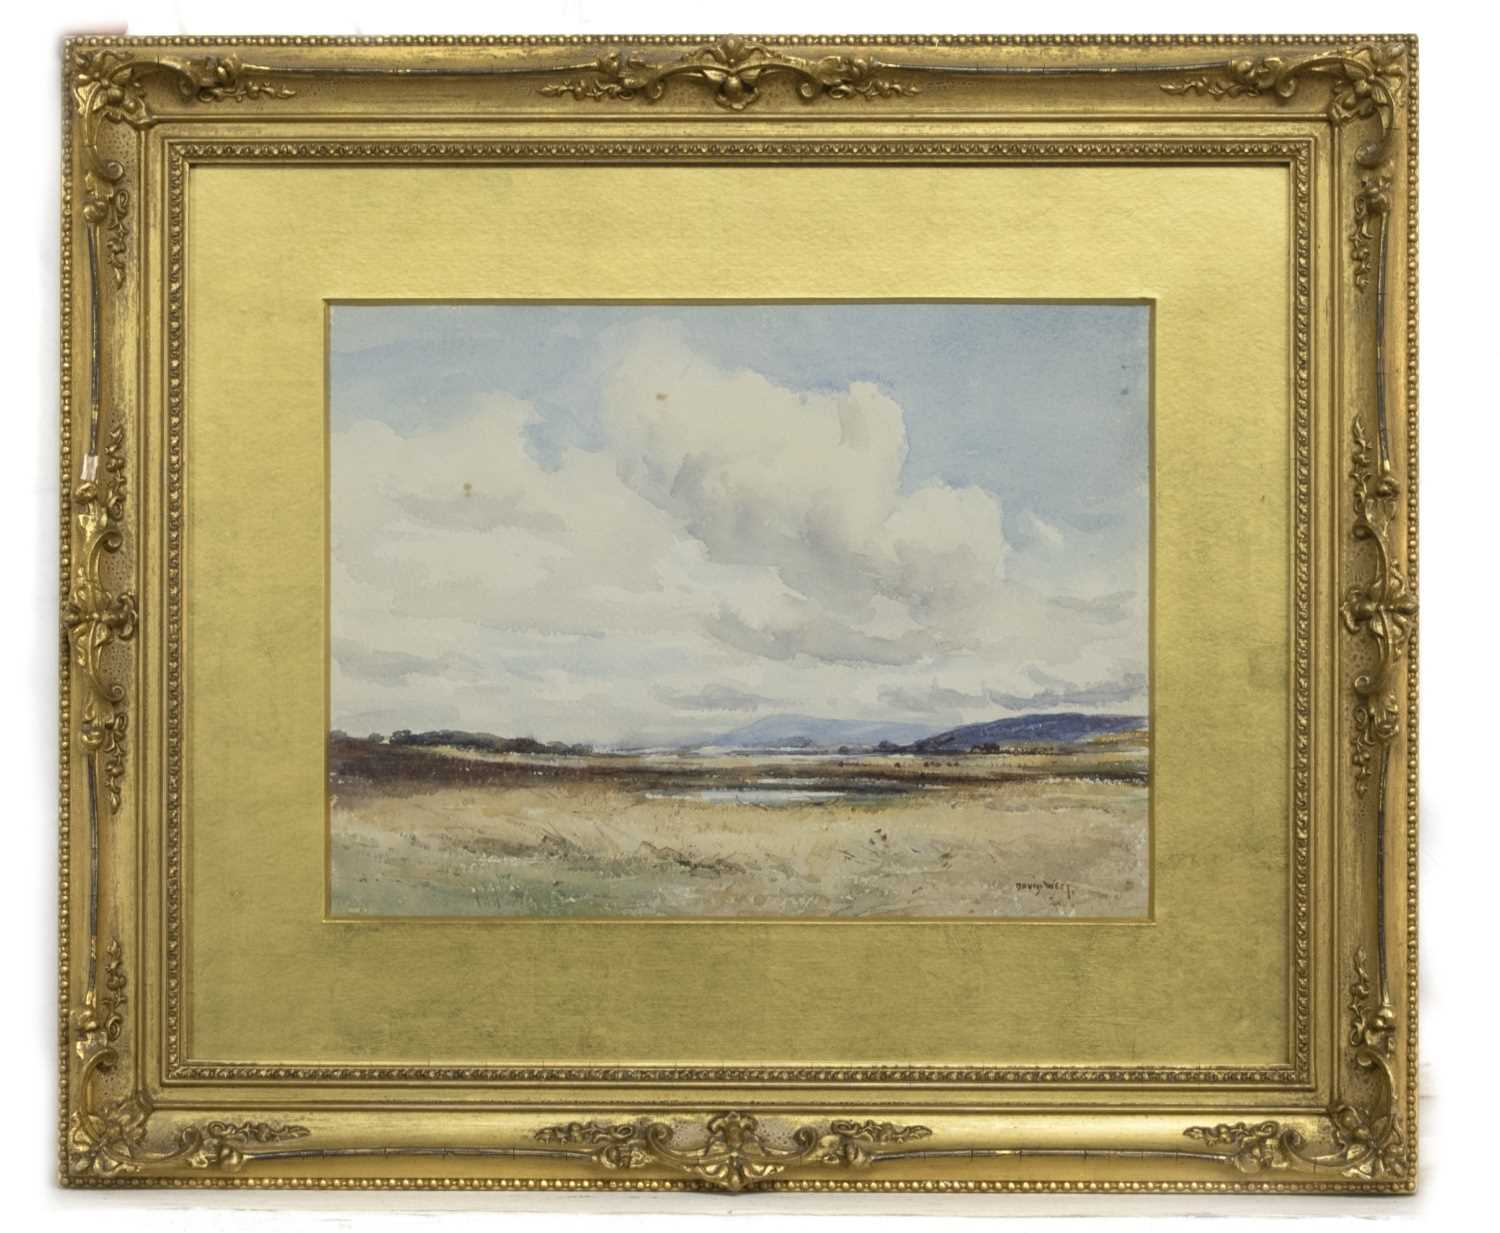 Lot 82 - AN UNTITLED WATERCOLOUR BY DAVID WEST